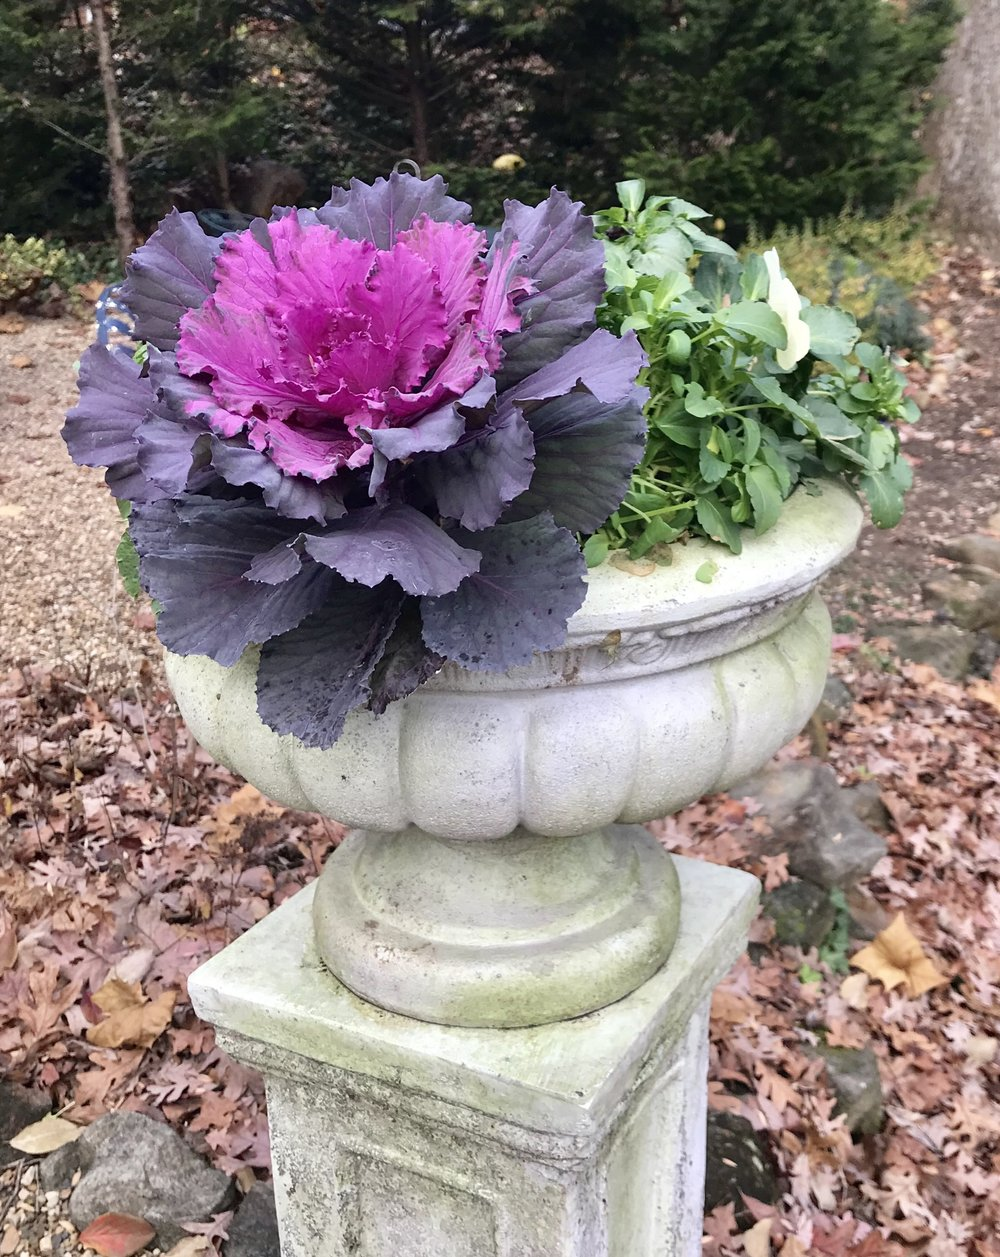 Pansies will last until next April for us here in Virginia. That ornamental kale will probably be a bit mushy after a couple of months, but it's still a pretty good option